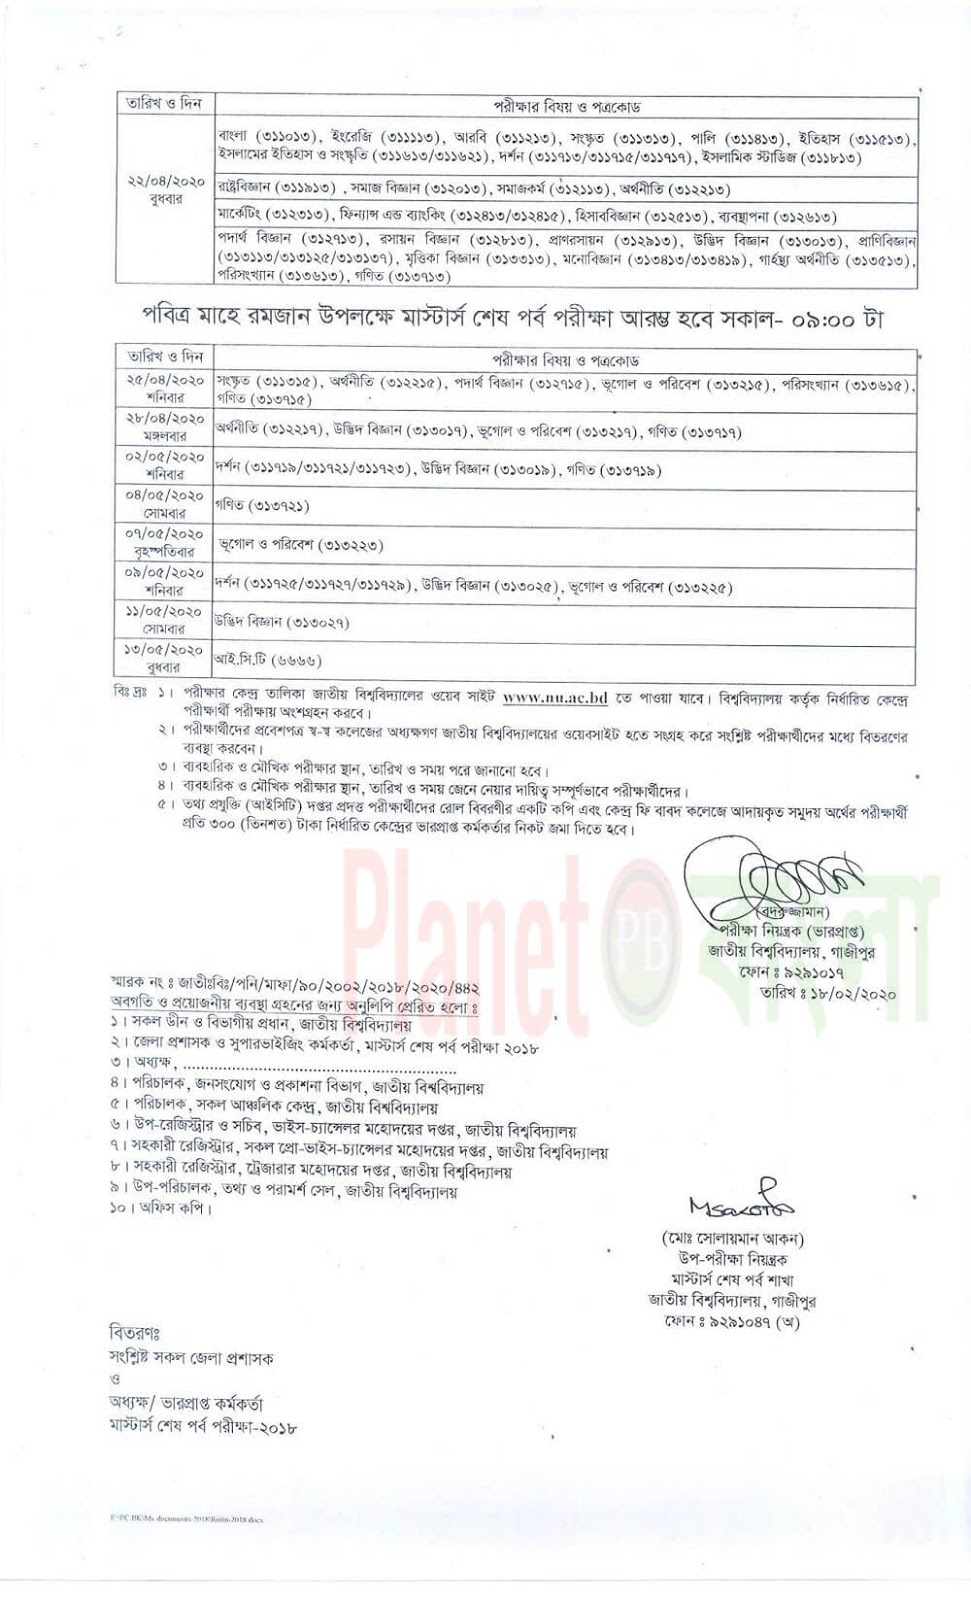 National University Masters Exam Routine 2020